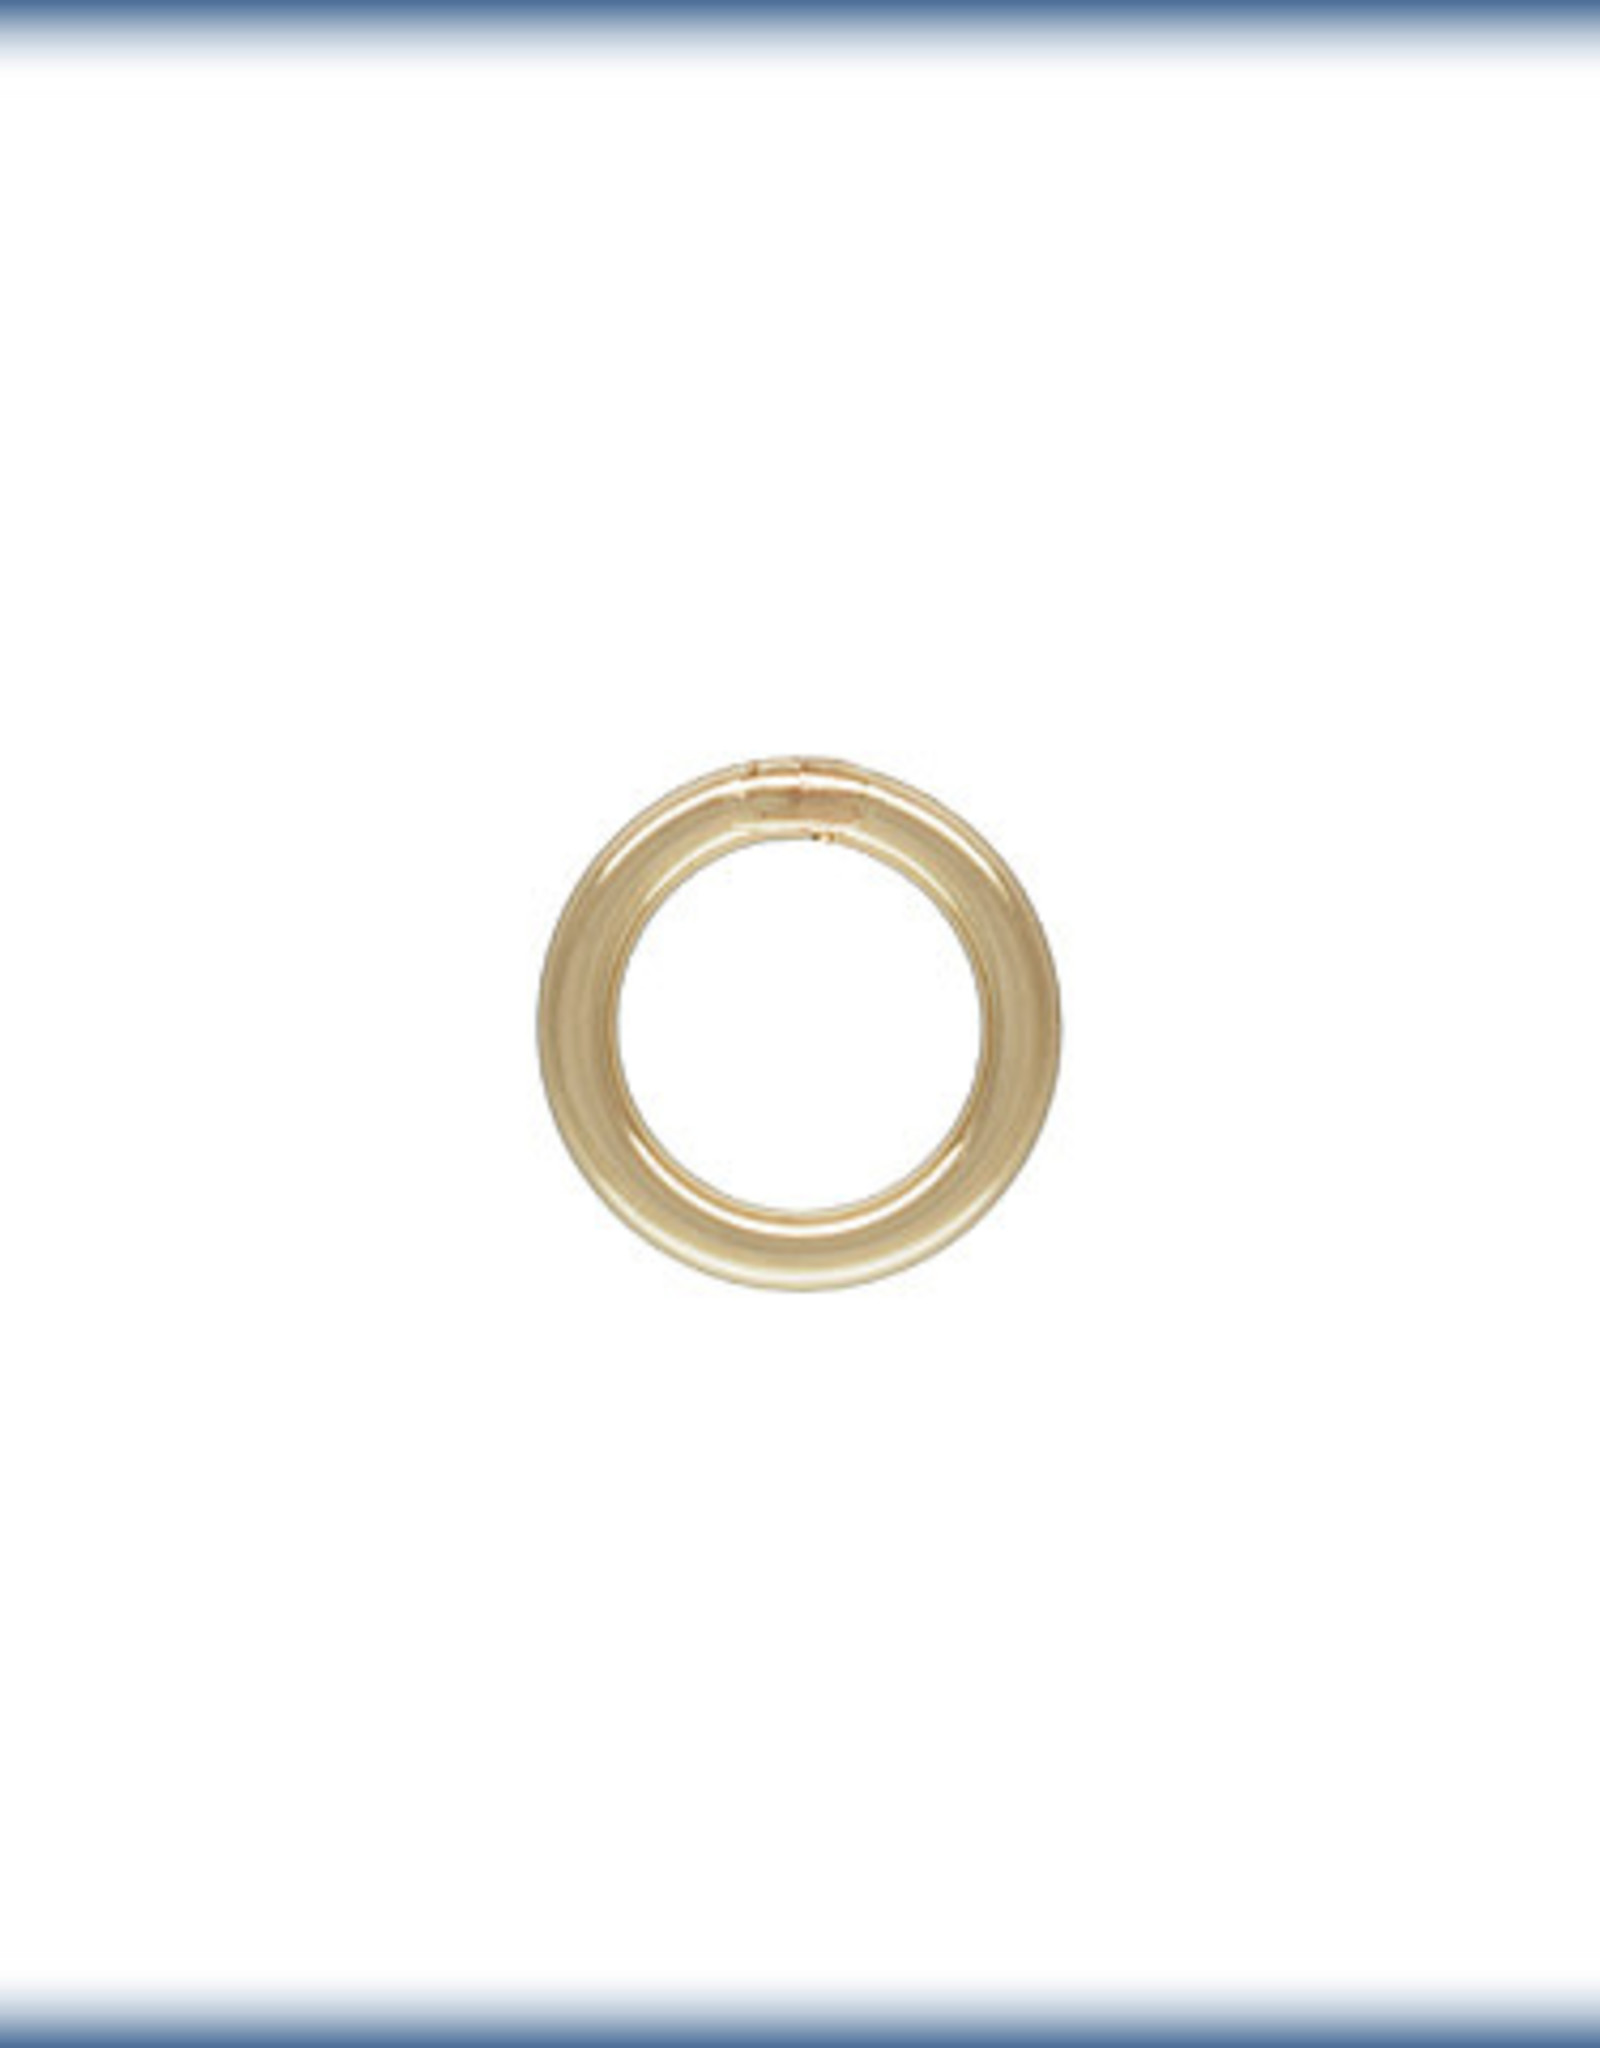 4mm Closed Rings 22ga 14k Gold Filled Qty 10